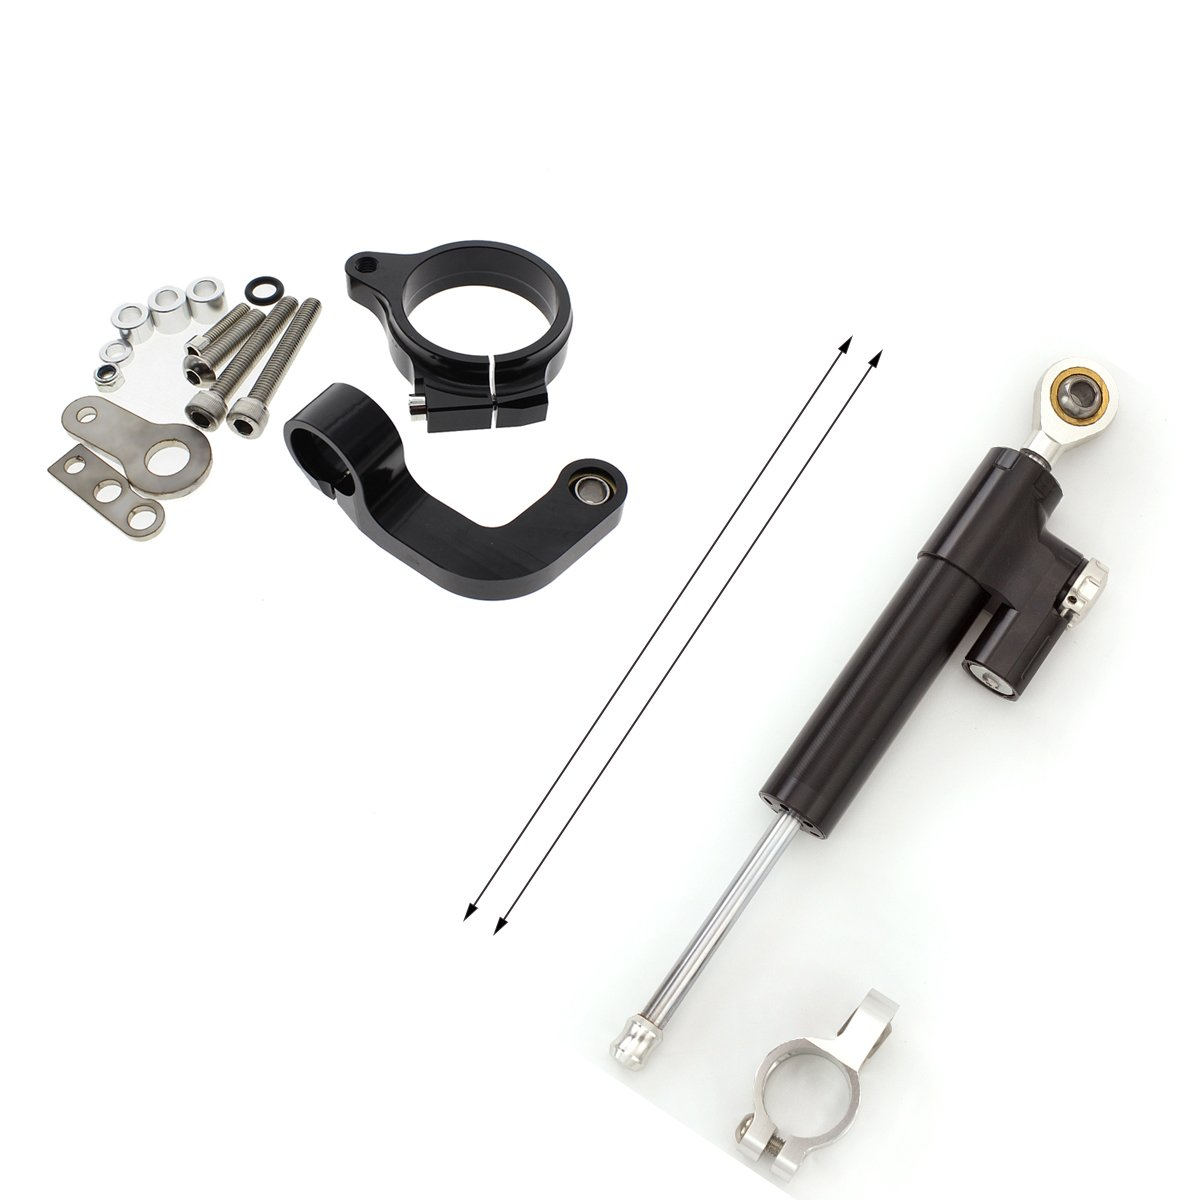 FXCNC Racing Motorcycle CNC Steering Damper Stabilizer Buffer Control Bar With Mounting Bracket Kit Full Set Fit For BMW R1200CL R1200GS 2013 2014